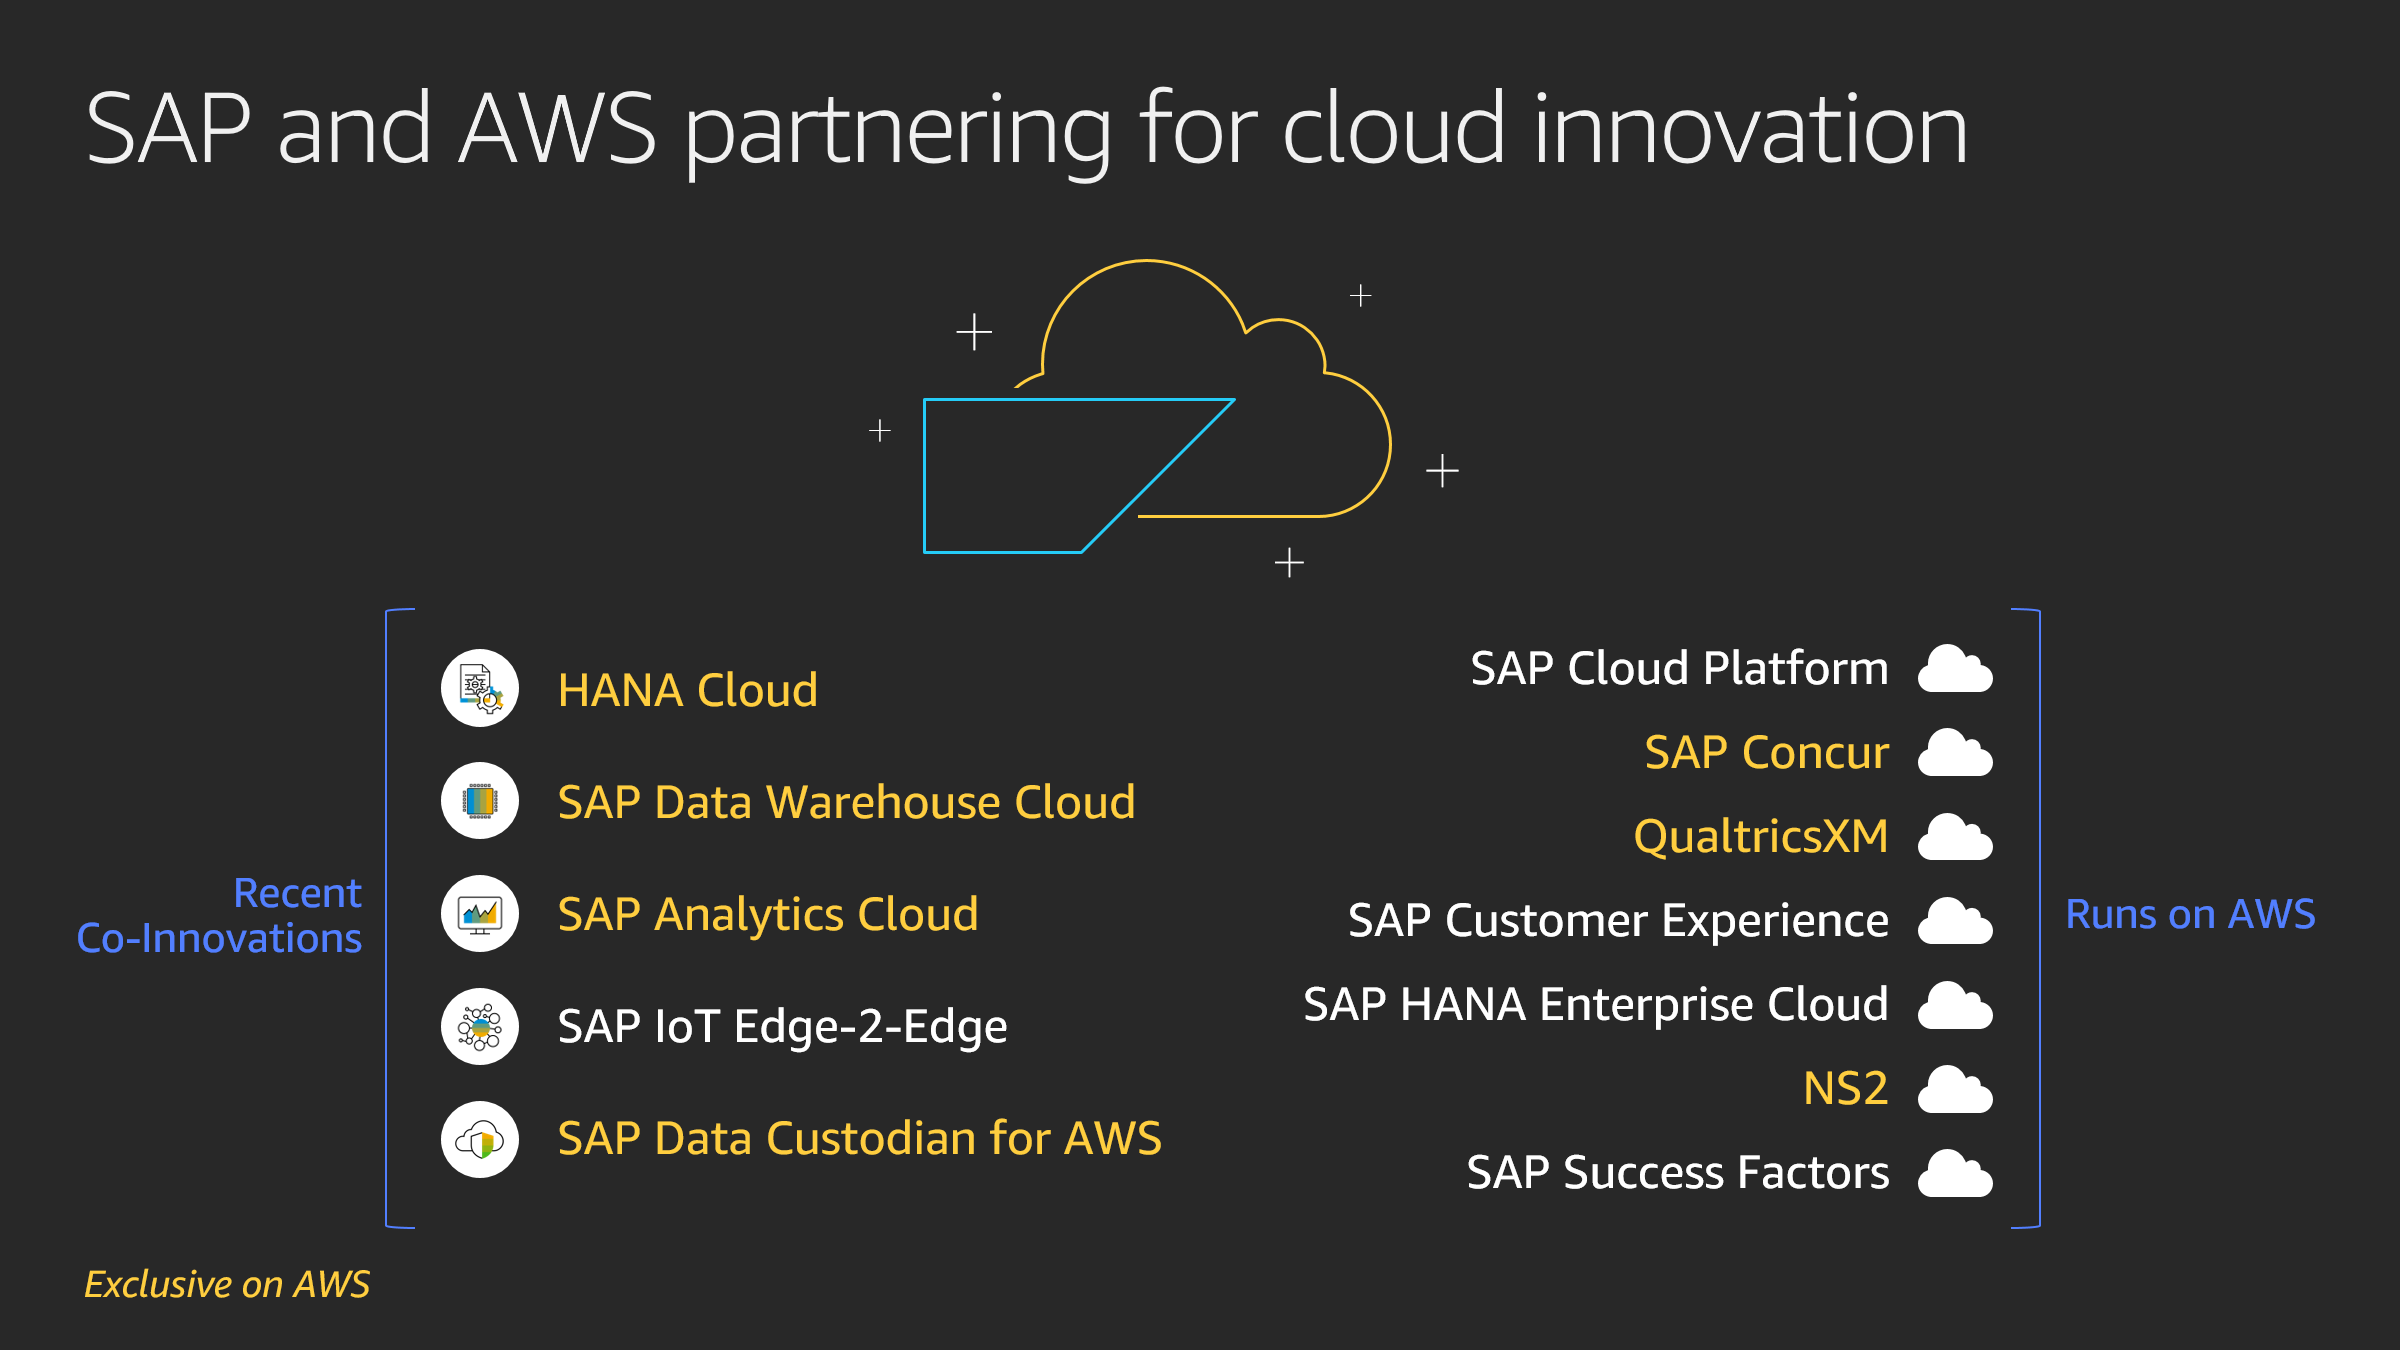 Image showing recent co-innovations with SAP (HANA Cloud, SAP Data Warehouse Cloud, SAP Analytics Cloud, SAP IoT Edge-2-Edge, and SAP Data Custodian for AWS) and SAP services that run on AWS (SAP Cloud Platform, SAP Concur, QualtricsXM, SAP Customer Experience, SAP HANA Enterprise Cloud, NS2, and SAP Success Factors).